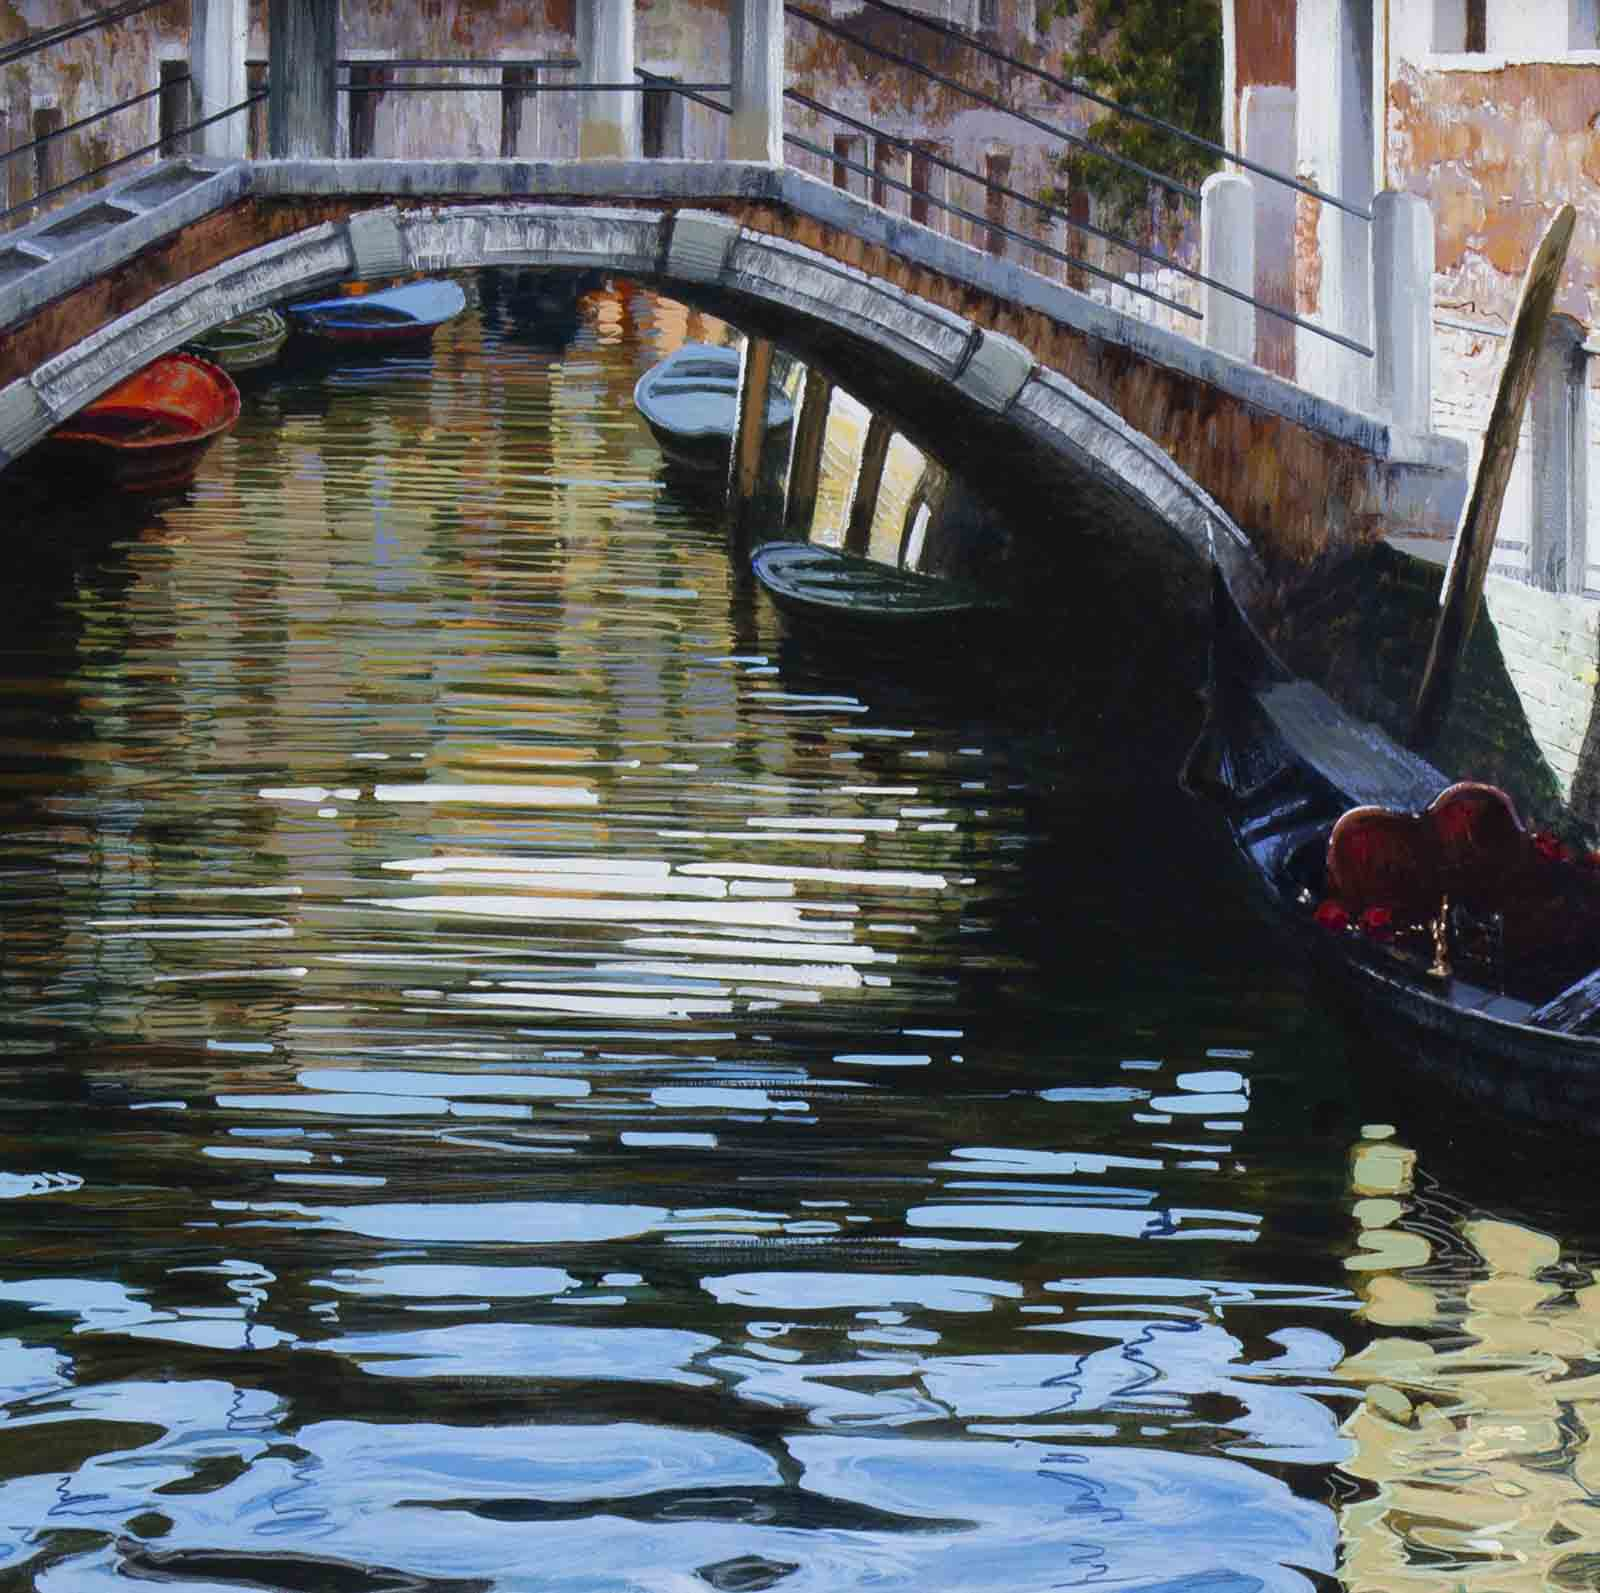 Reflections of Venice